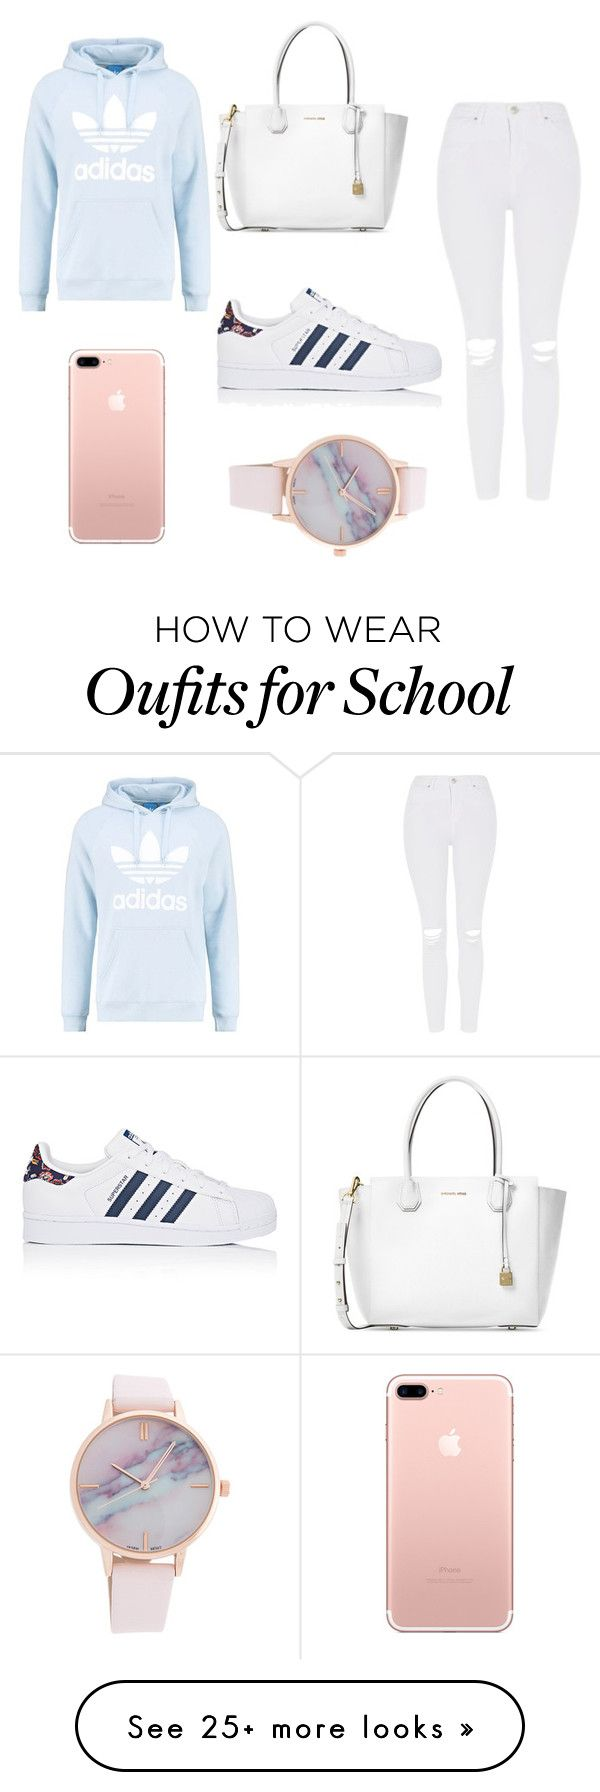 """school outfit "" by ashlehhfhbffg on Polyvore featuring Michael Kors, Topshop, adidas Originals and adidas"